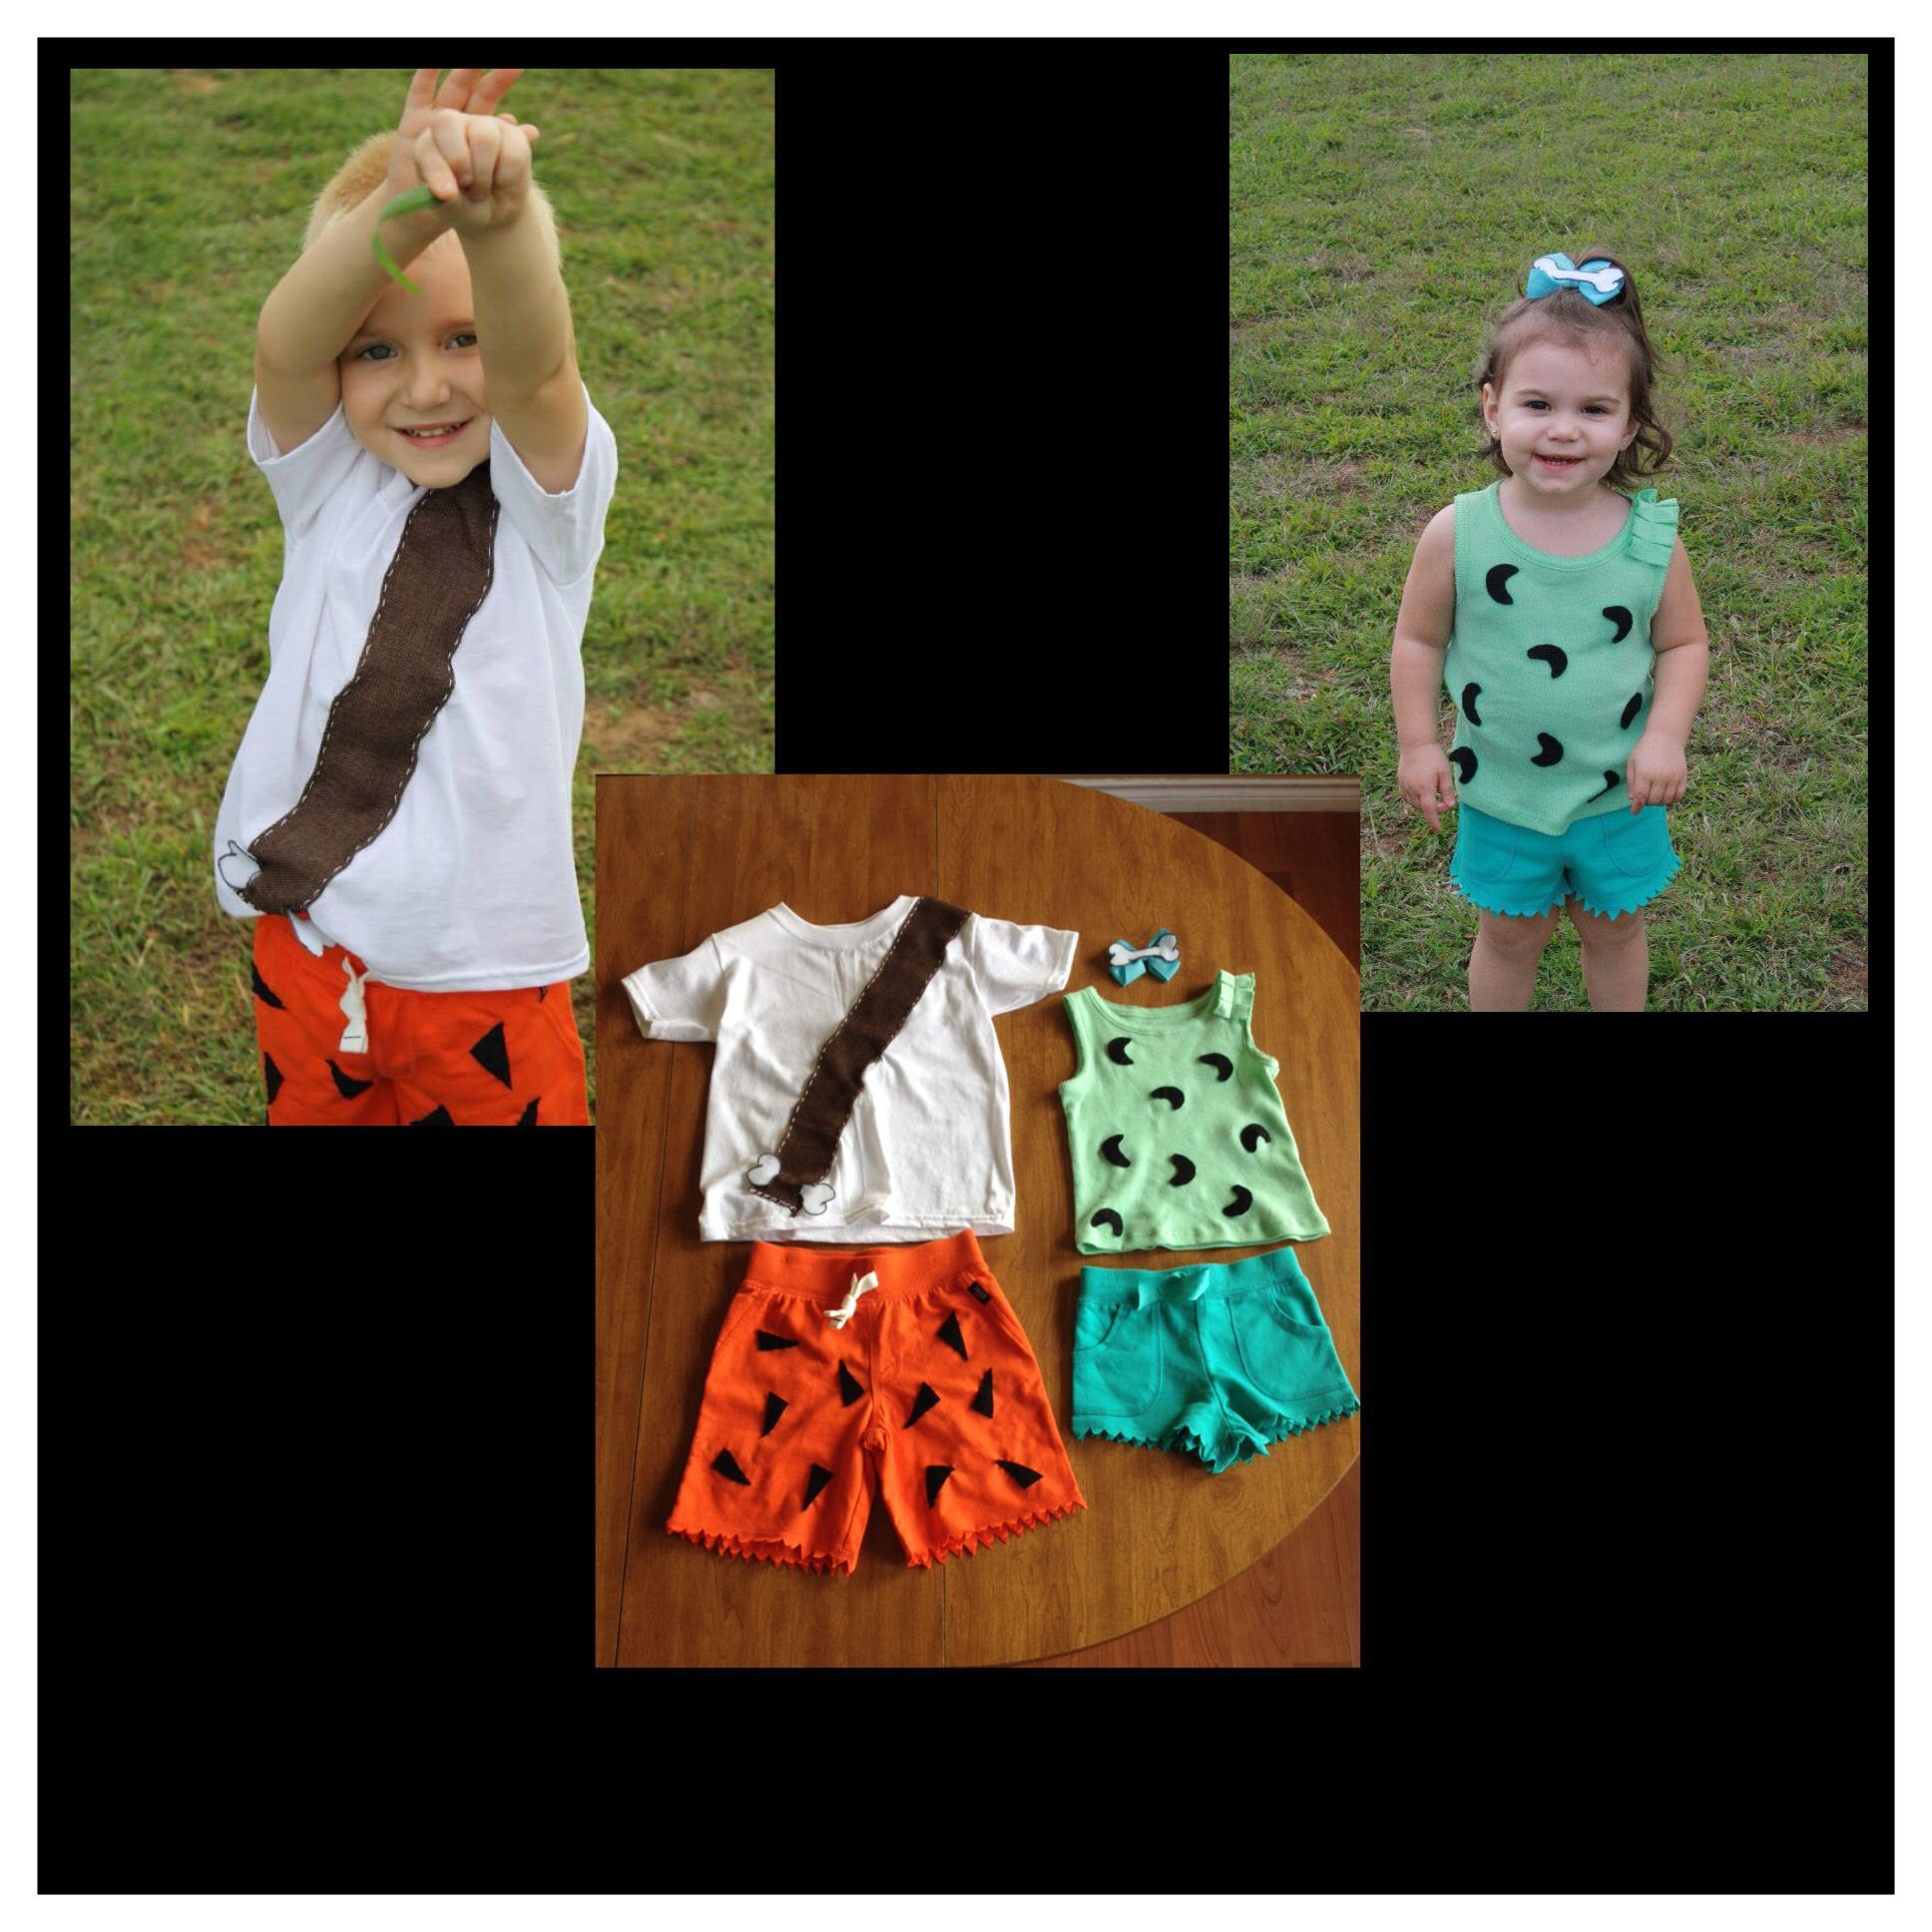 Pebbles and Bam Bam Halloween costumes #pebblesandbambamcostumes Pebbles and Bam Bam Halloween costumes #pebblesandbambamcostumes